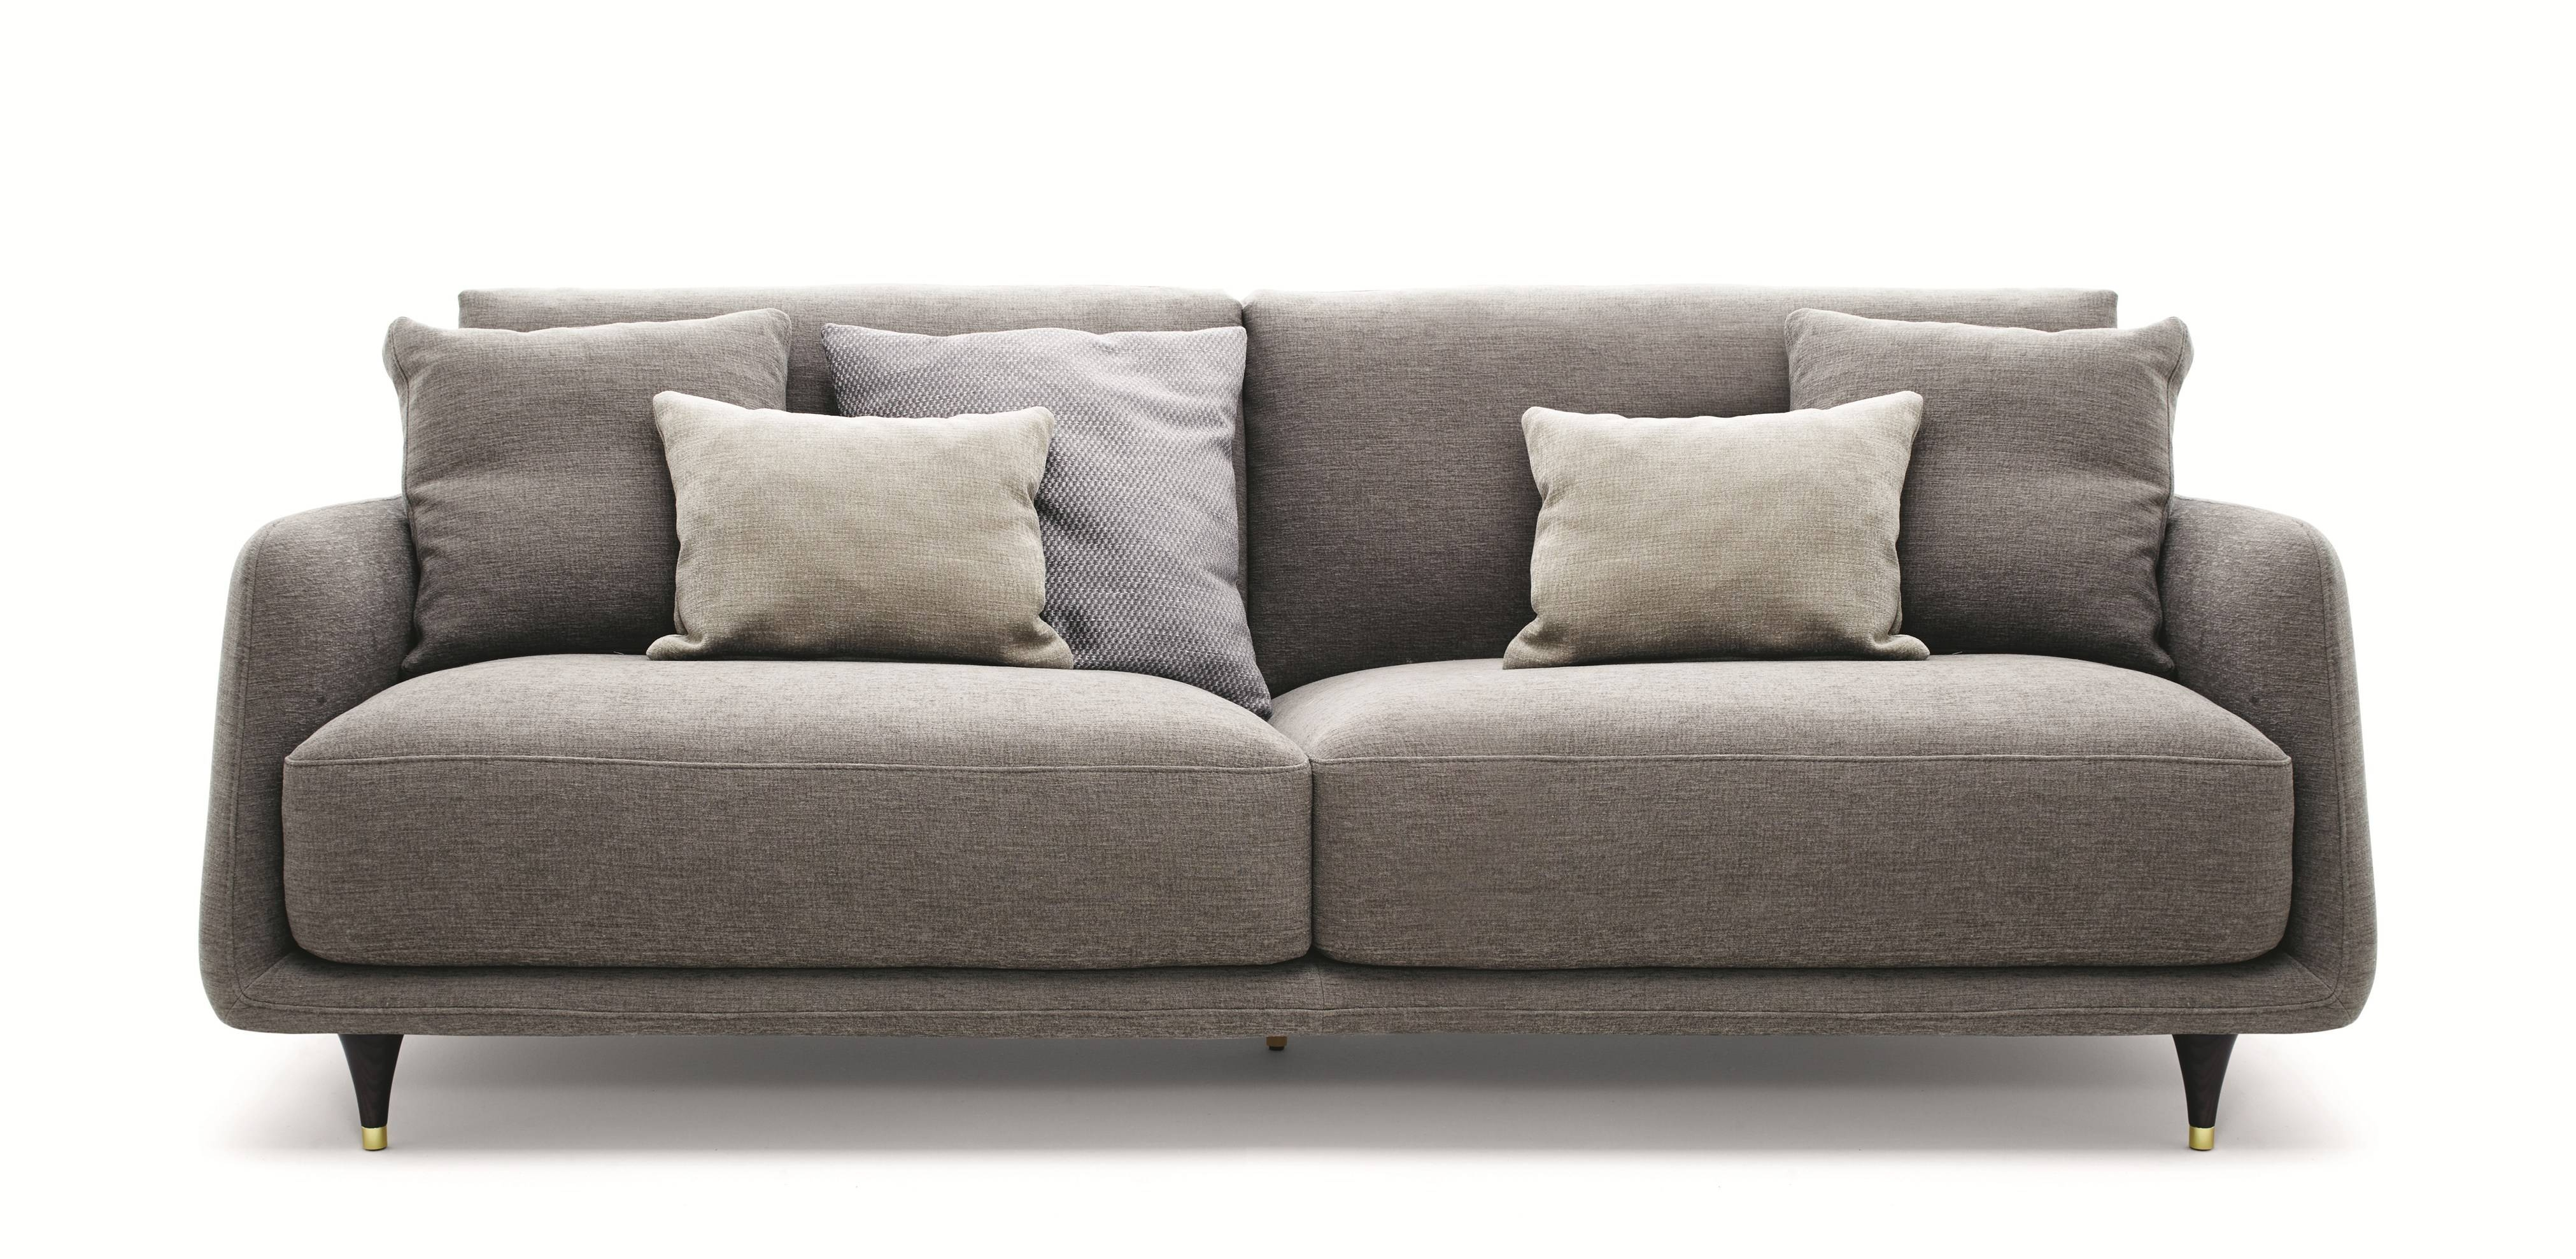 Sectional Sofa Elliotditre Italia Design Stefano Spessotto for Elliott Sofa (Image 28 of 30)